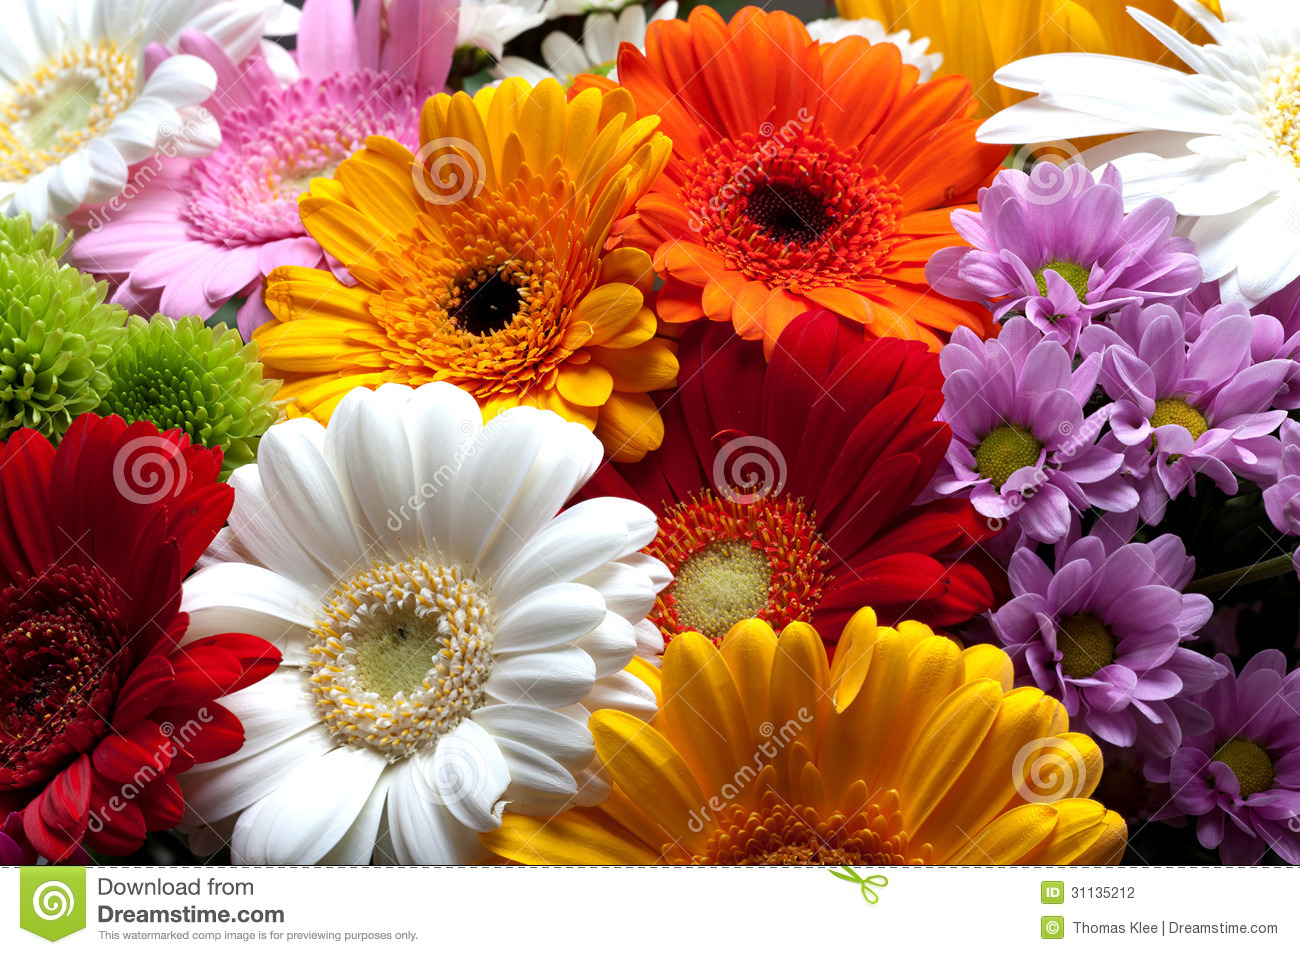 Colorful flowers blossom stock photo image of colors for What makes flowers different colors